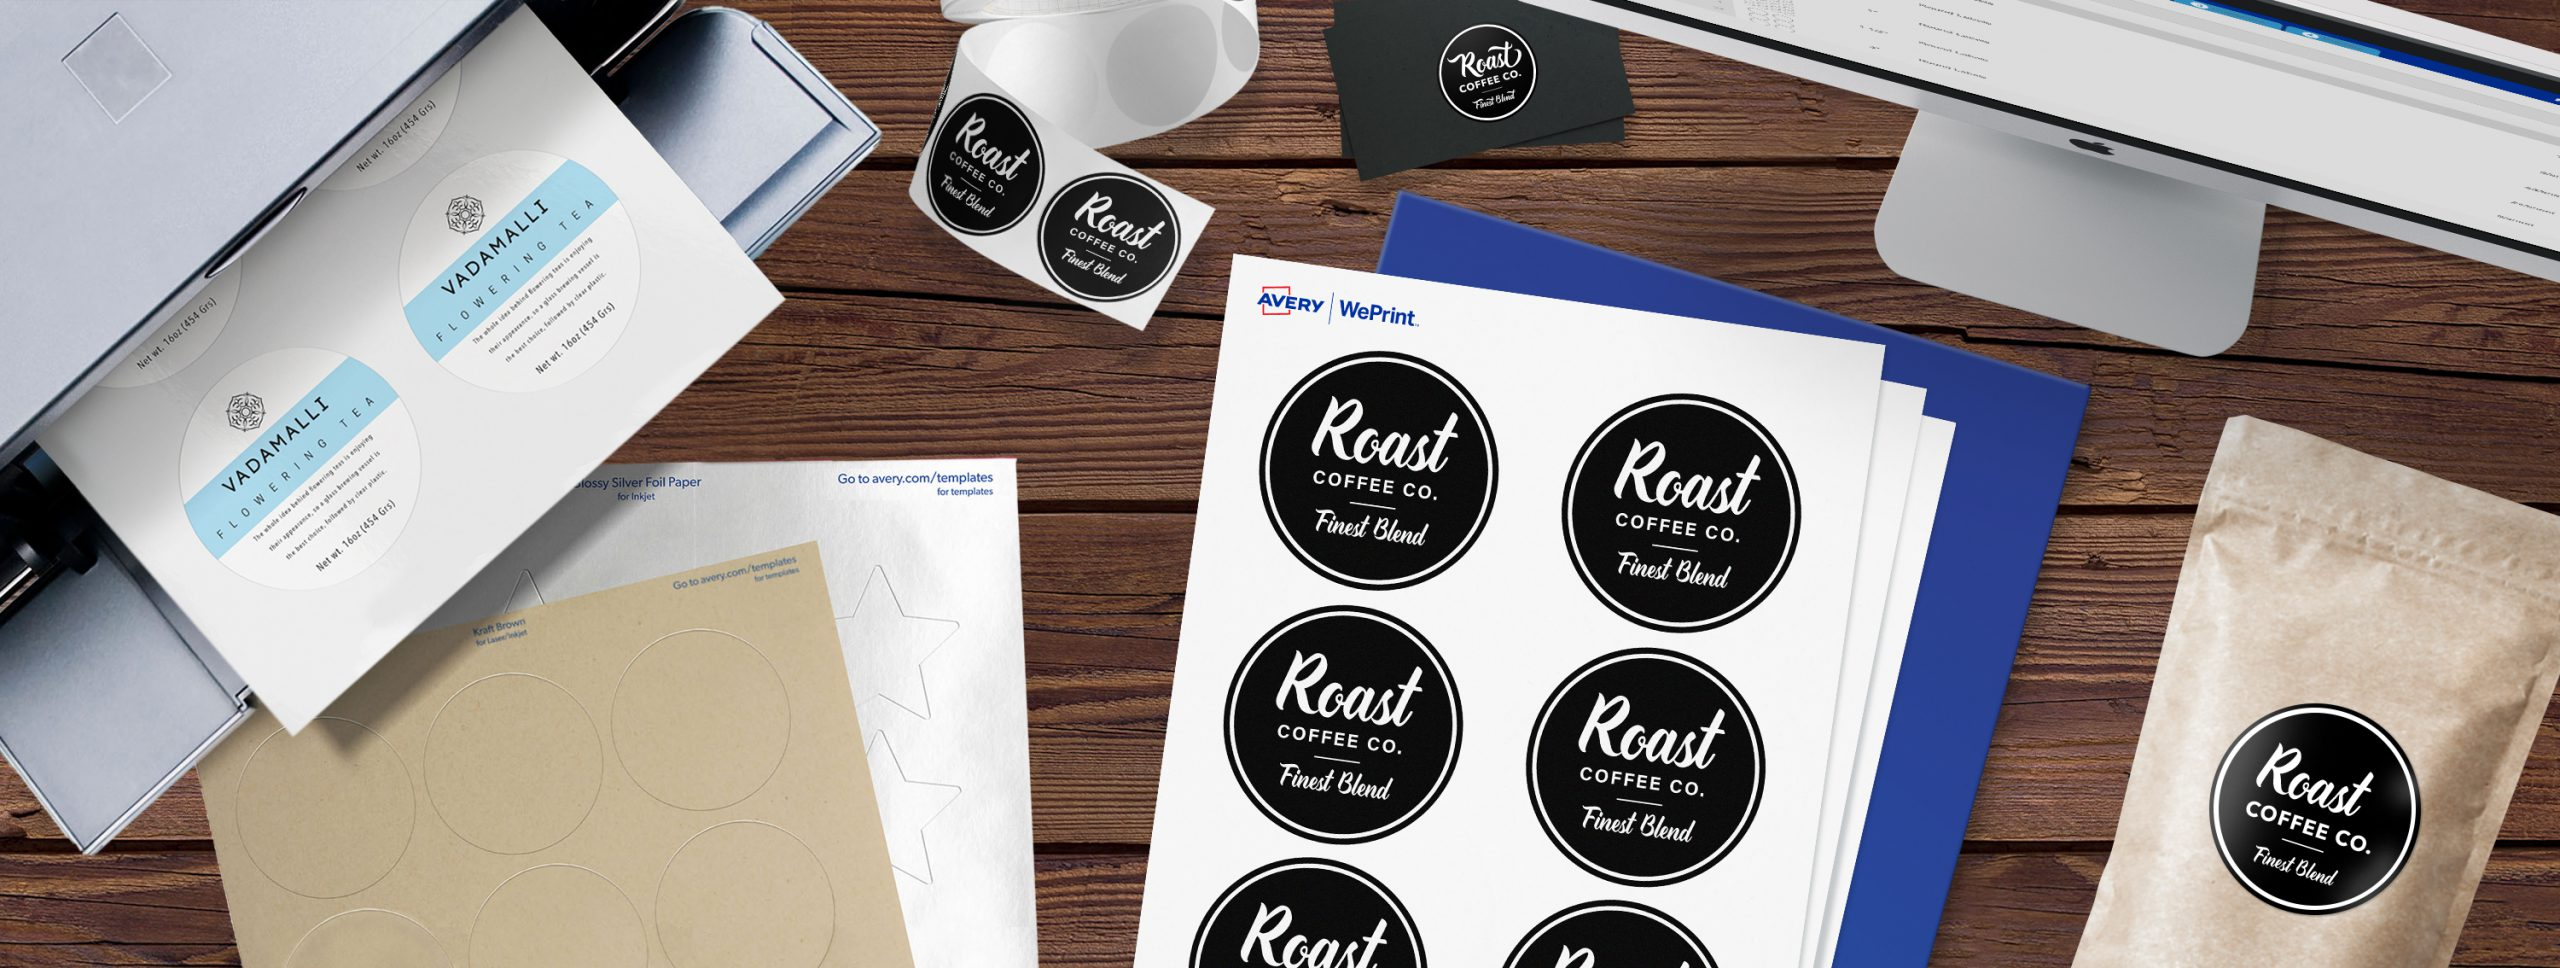 Should you print your own labels or use a professional printing service